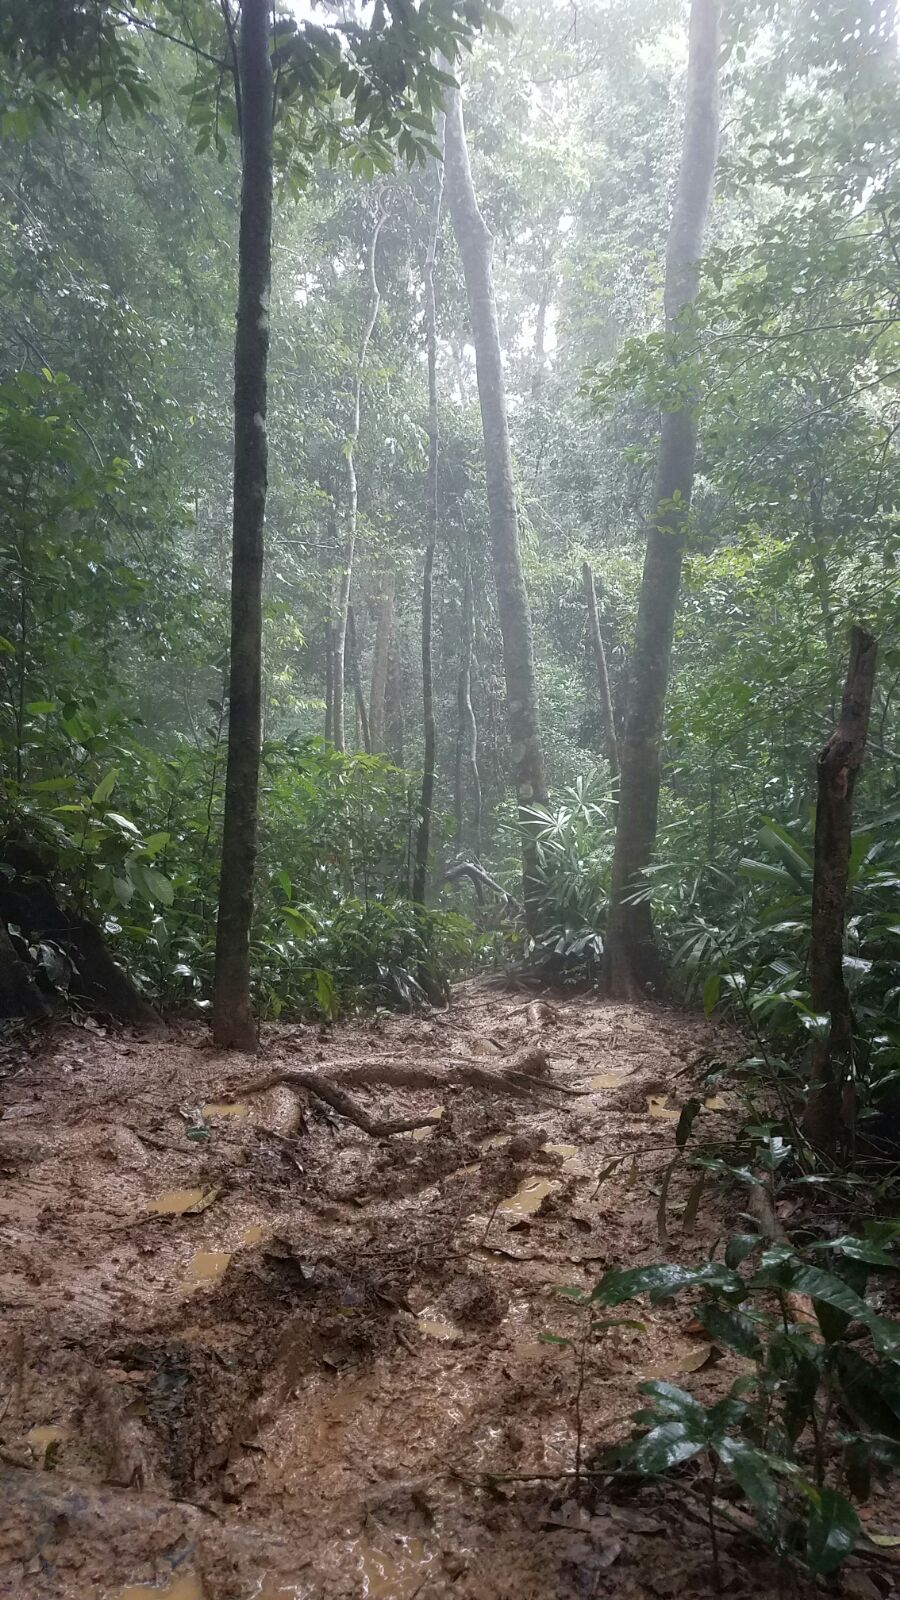 Photo by John Perez of our mucky trek through the jungle